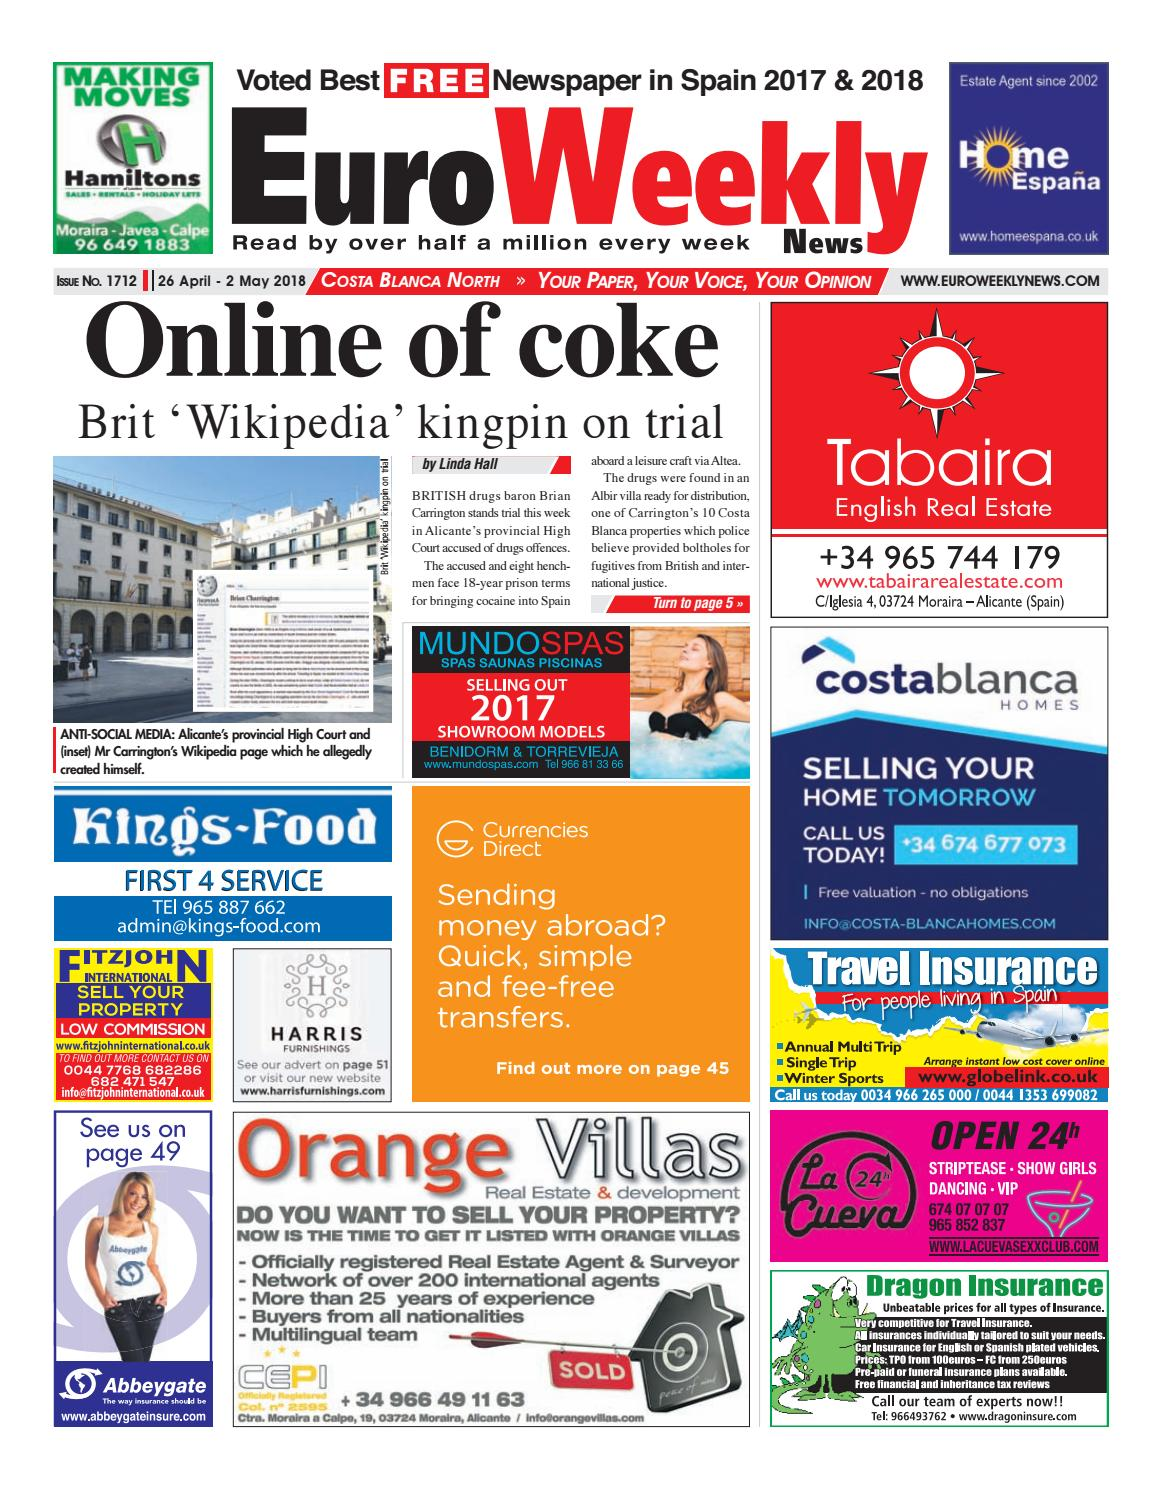 c55d58a2590 Euro Weekly News - Costa Blanca North 26 April - 2 May 2018 Issue 1712 by  Euro Weekly News Media S.A. - issuu